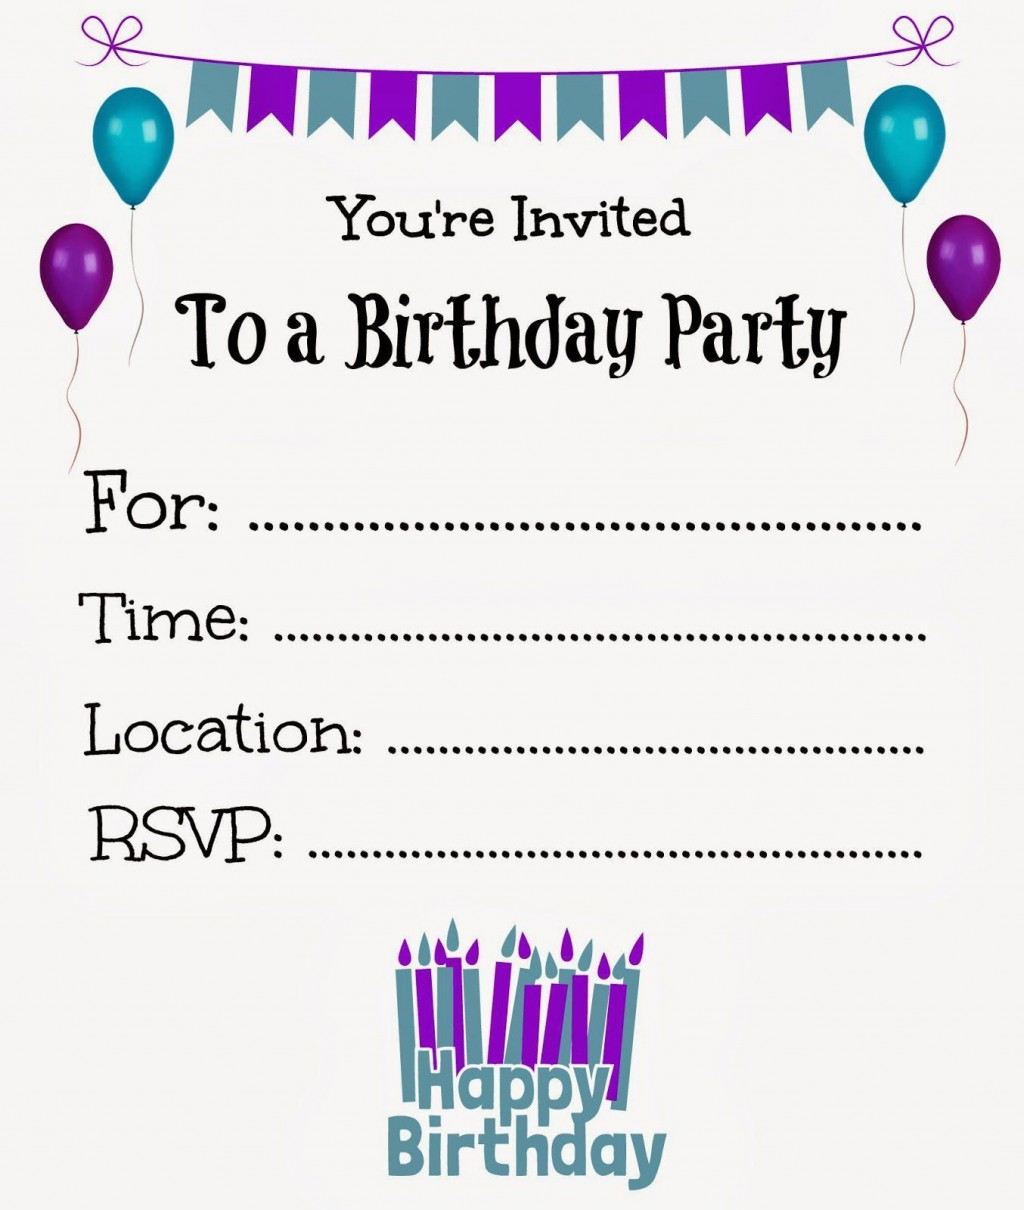 008 Unique Free Online Birthday Party Invitation Template Photo  Templates MakerLarge